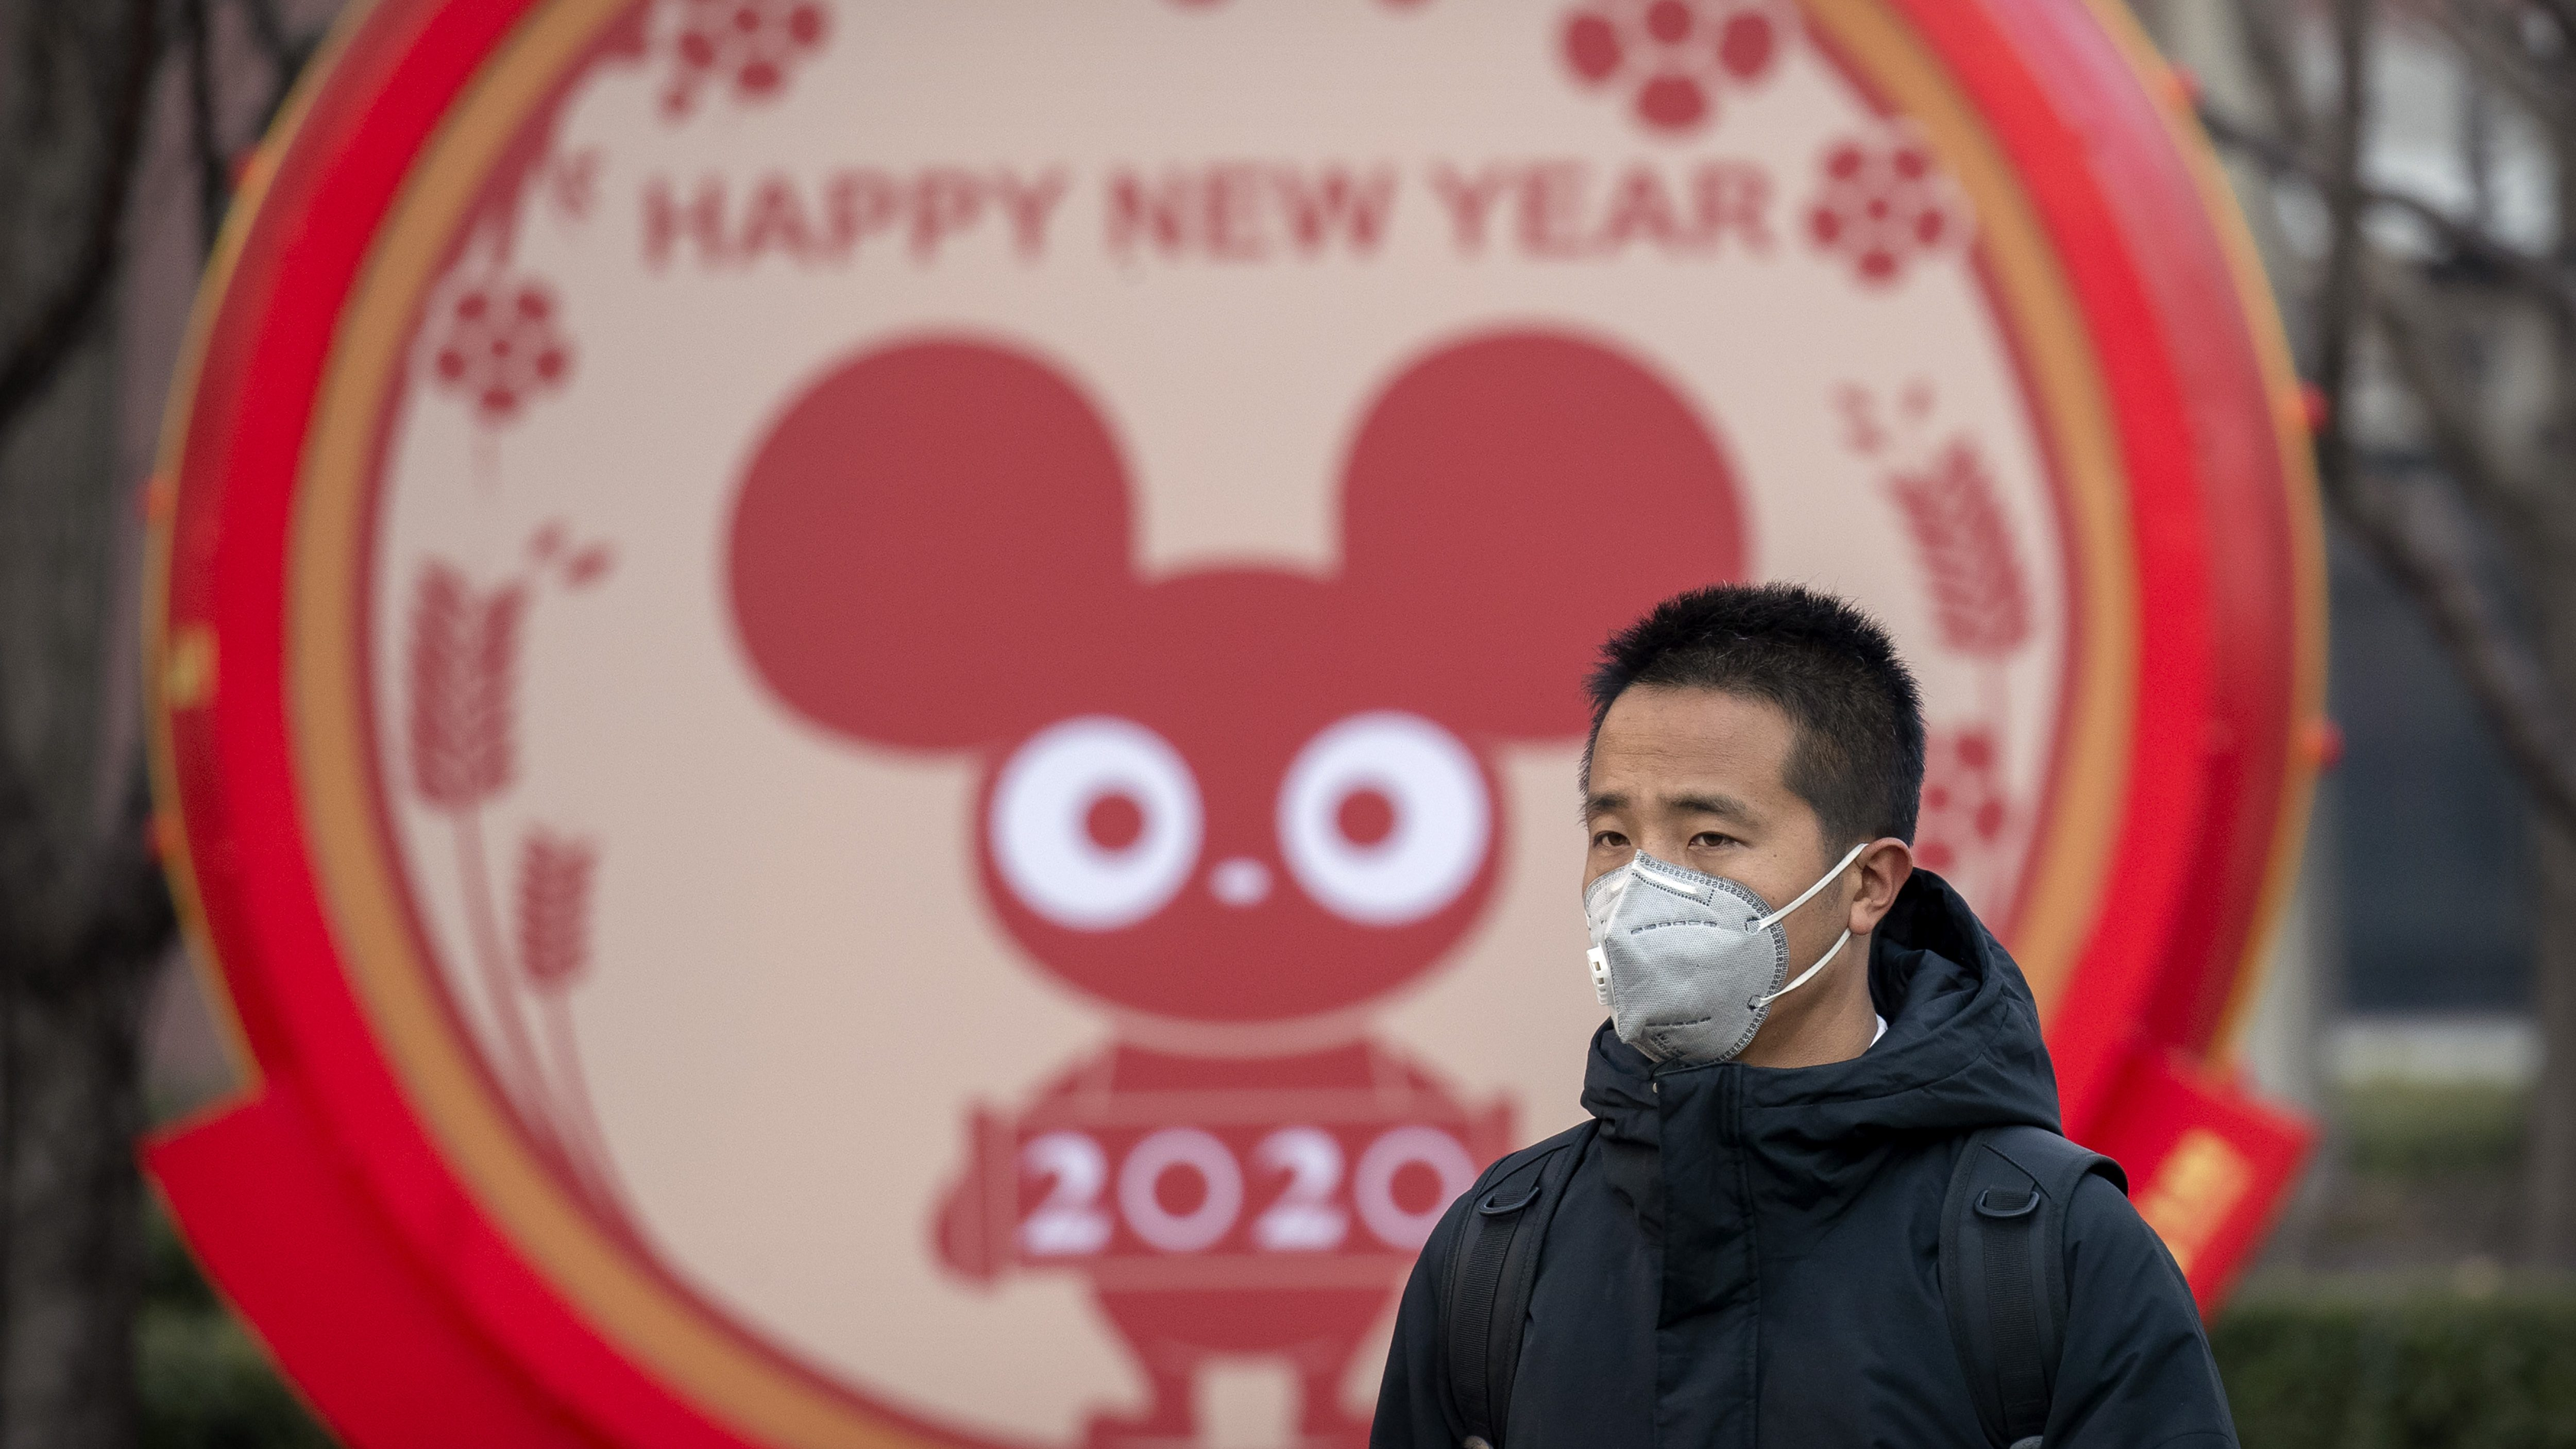 A man wears a face mask as he walks past a display for the upcoming Lunar New Year, the Year of the Rat, in Beijing, Wednesday, Jan. 22, 2020.